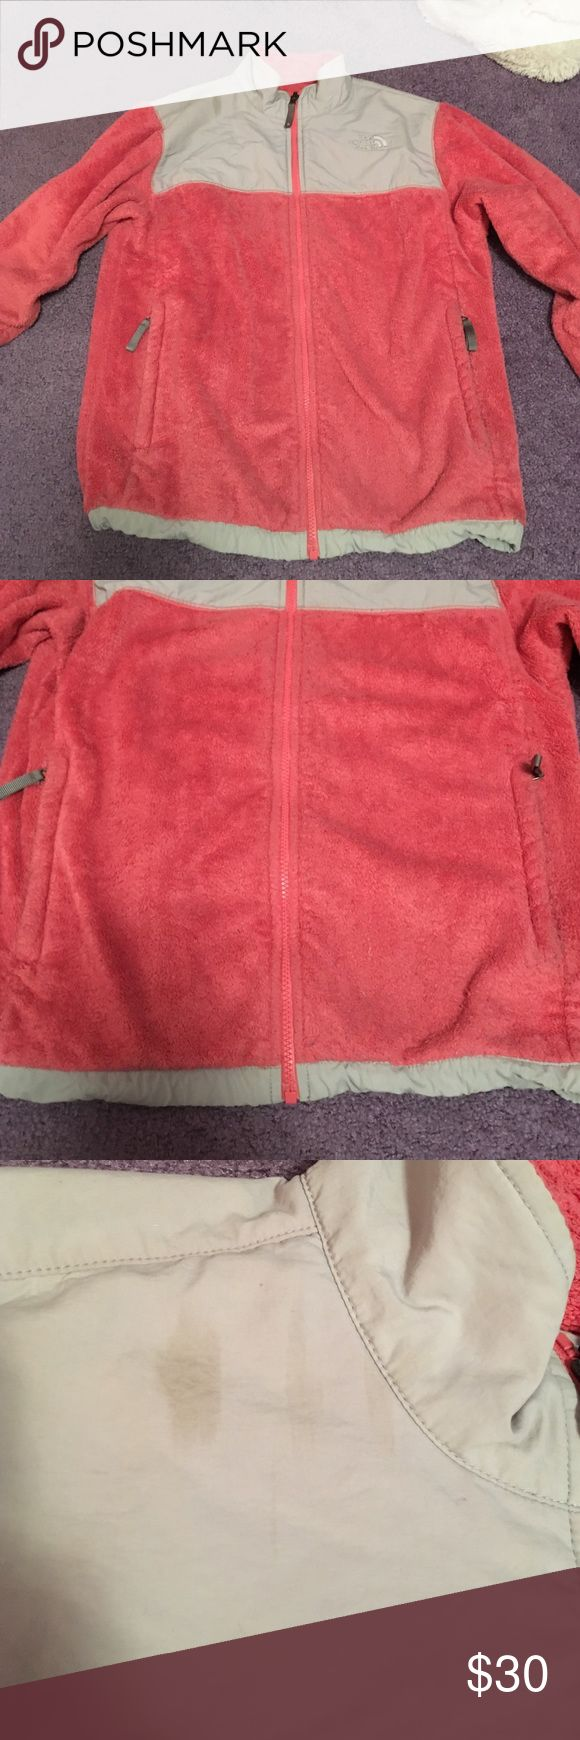 """North Face fuzzy fleece zip up Well loved pinkish orange fleece zip up. Has been worn a lot and washed before so it's far from new. It is still soft but but definitely worn and not """"fresh fuzz"""". Some discoloration spots that can be seen in the pictures as well as some pilling. Great to throw on and keep warm. Girls XL also fits women's small. Ask any question ! The North Face Jackets & Coats"""